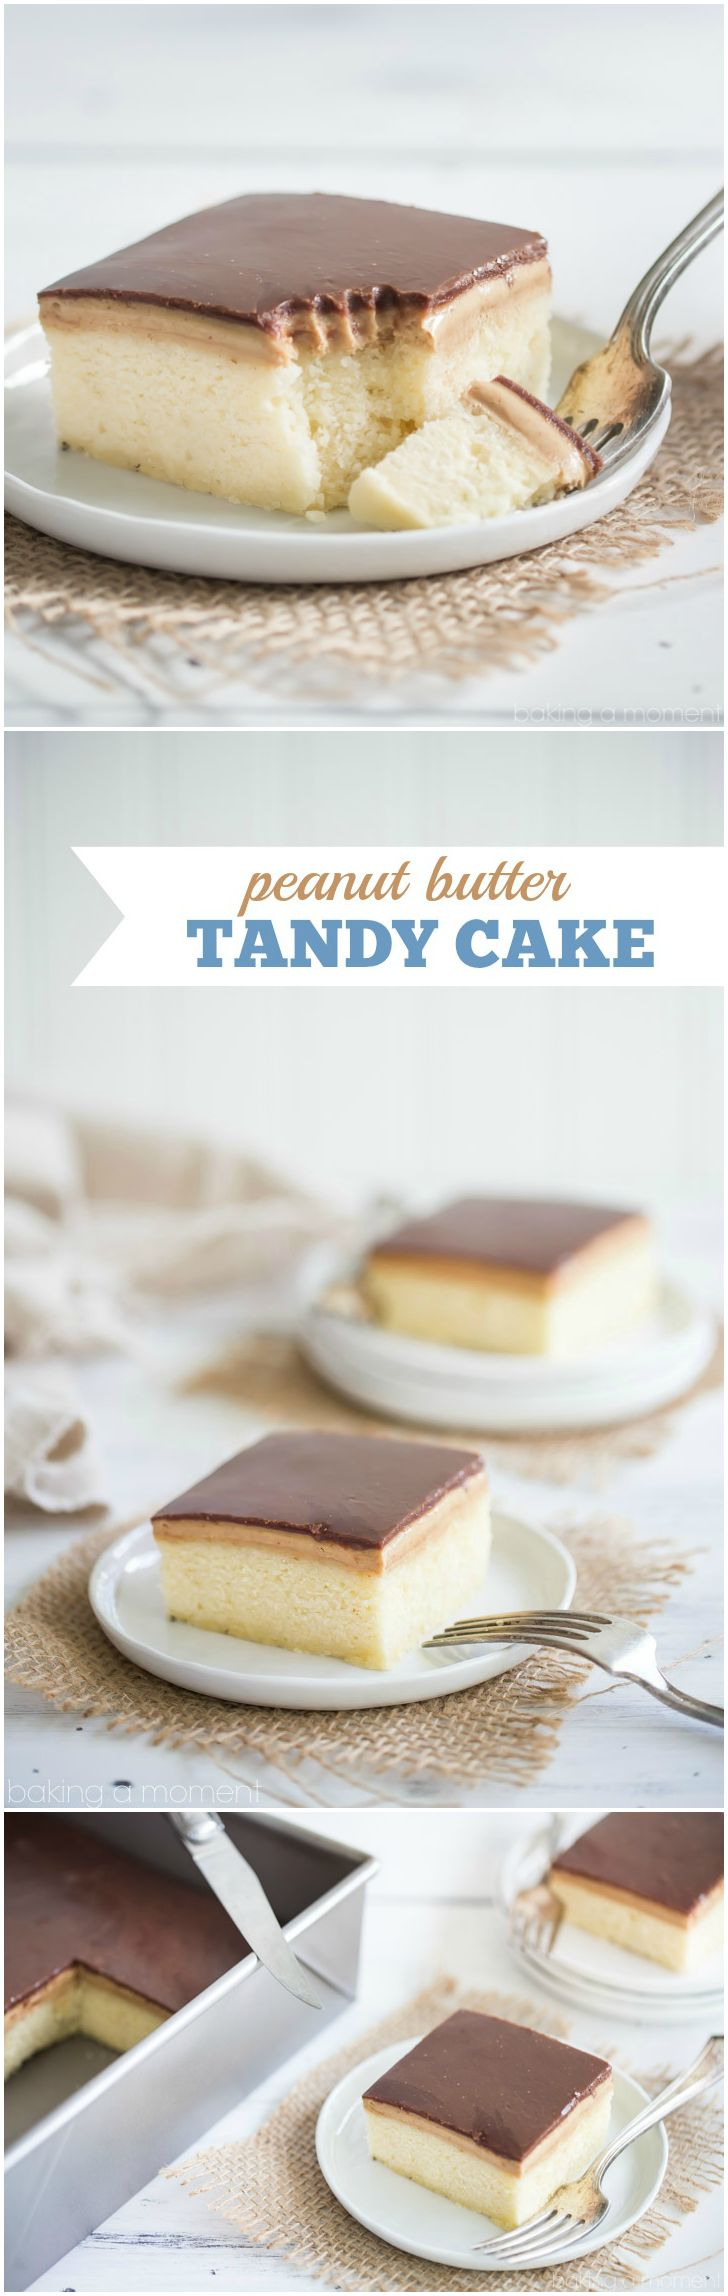 Tastykake Tandy Cake Recipe